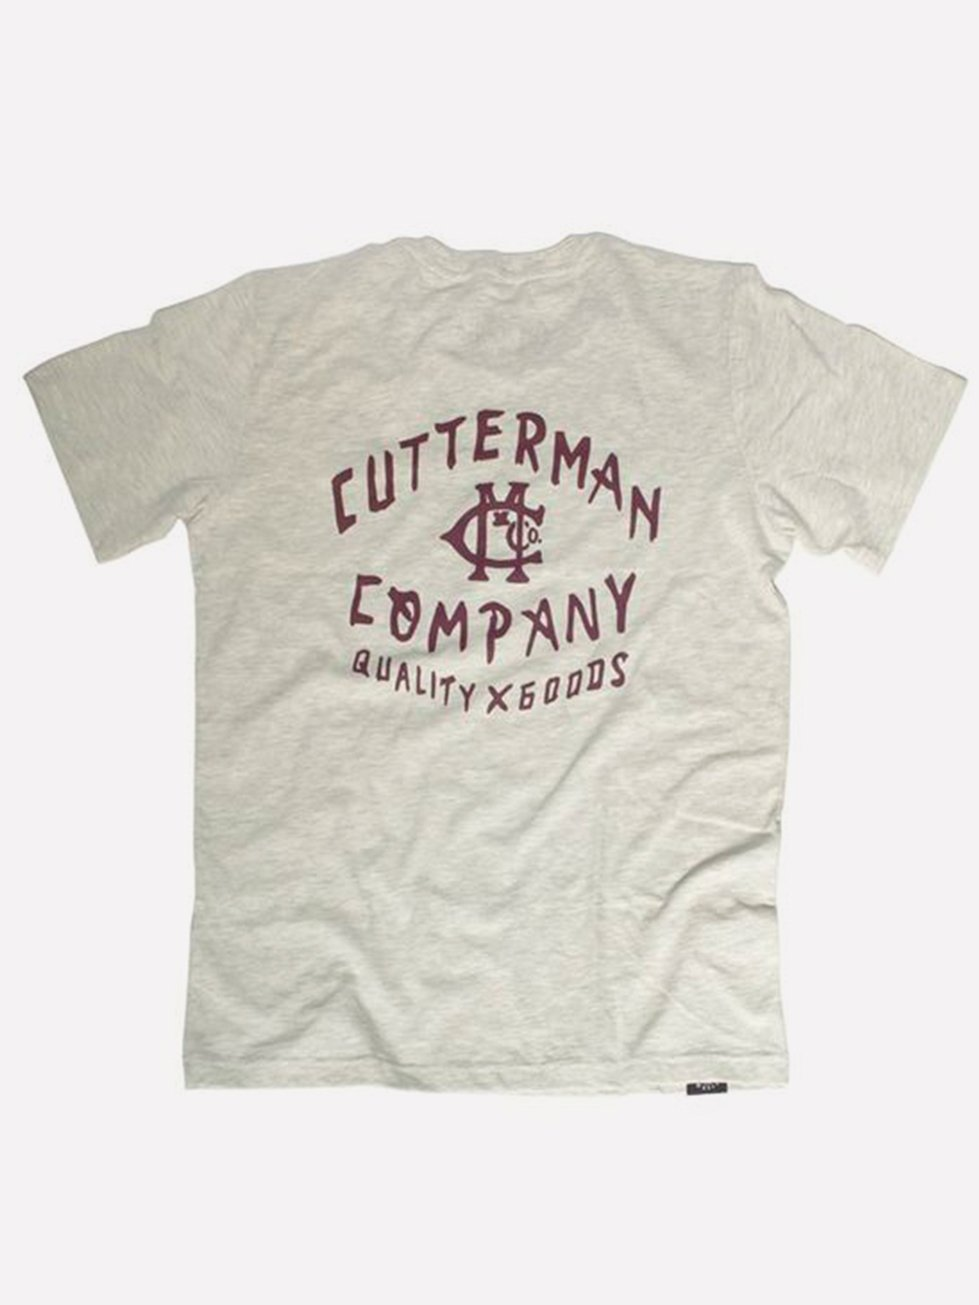 Foto do Camiseta Cutterman Co. Flag